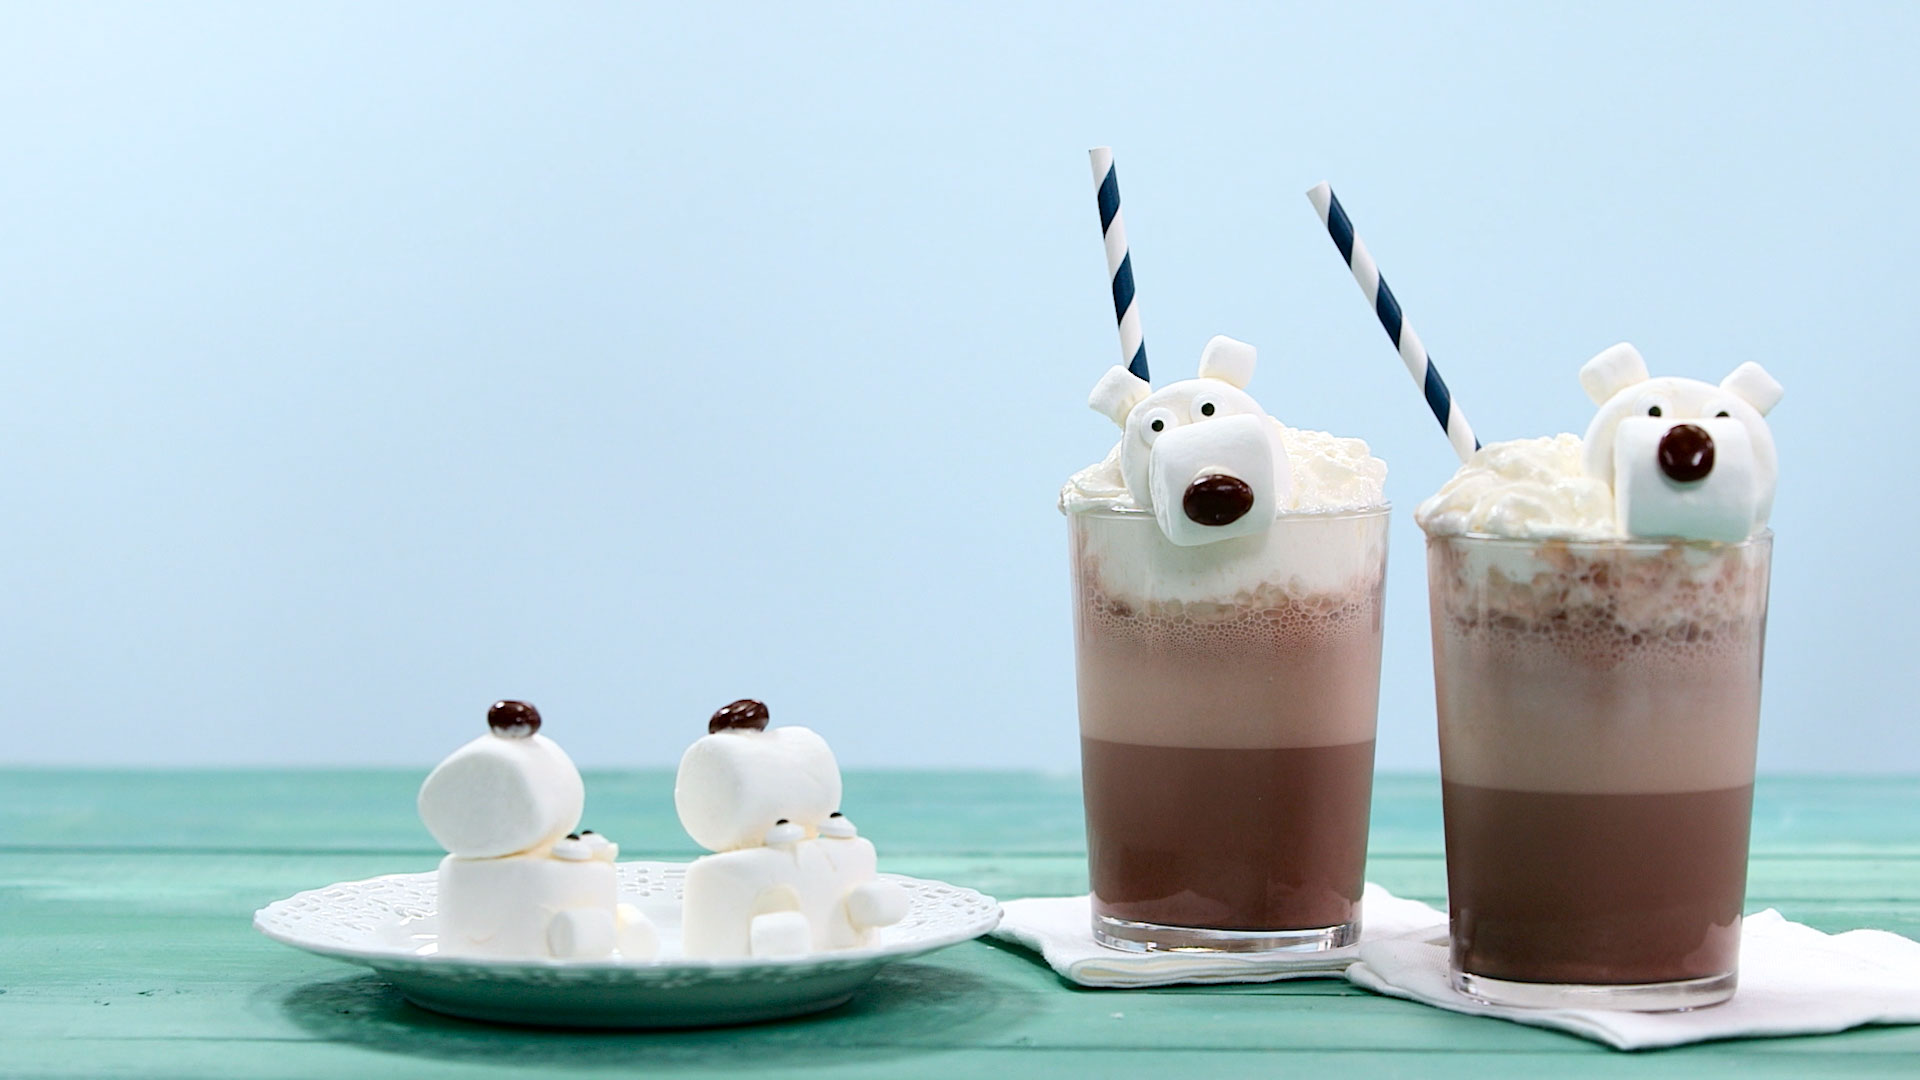 Polar Bear Frozen Hot Chocolate Still Image